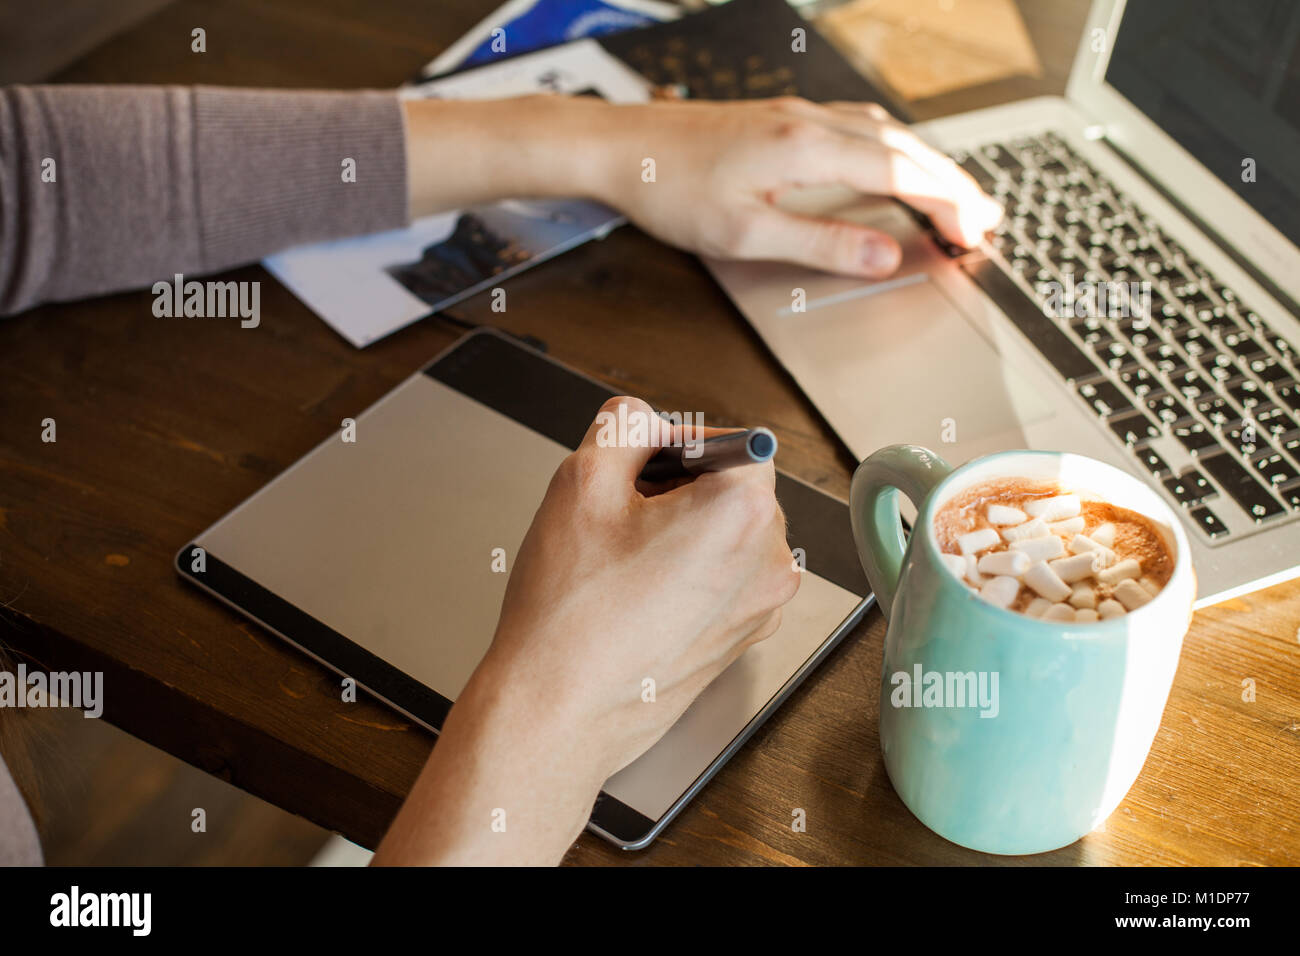 Designer Using Graphic Tablet and Laptop  at Home Office - Stock Image